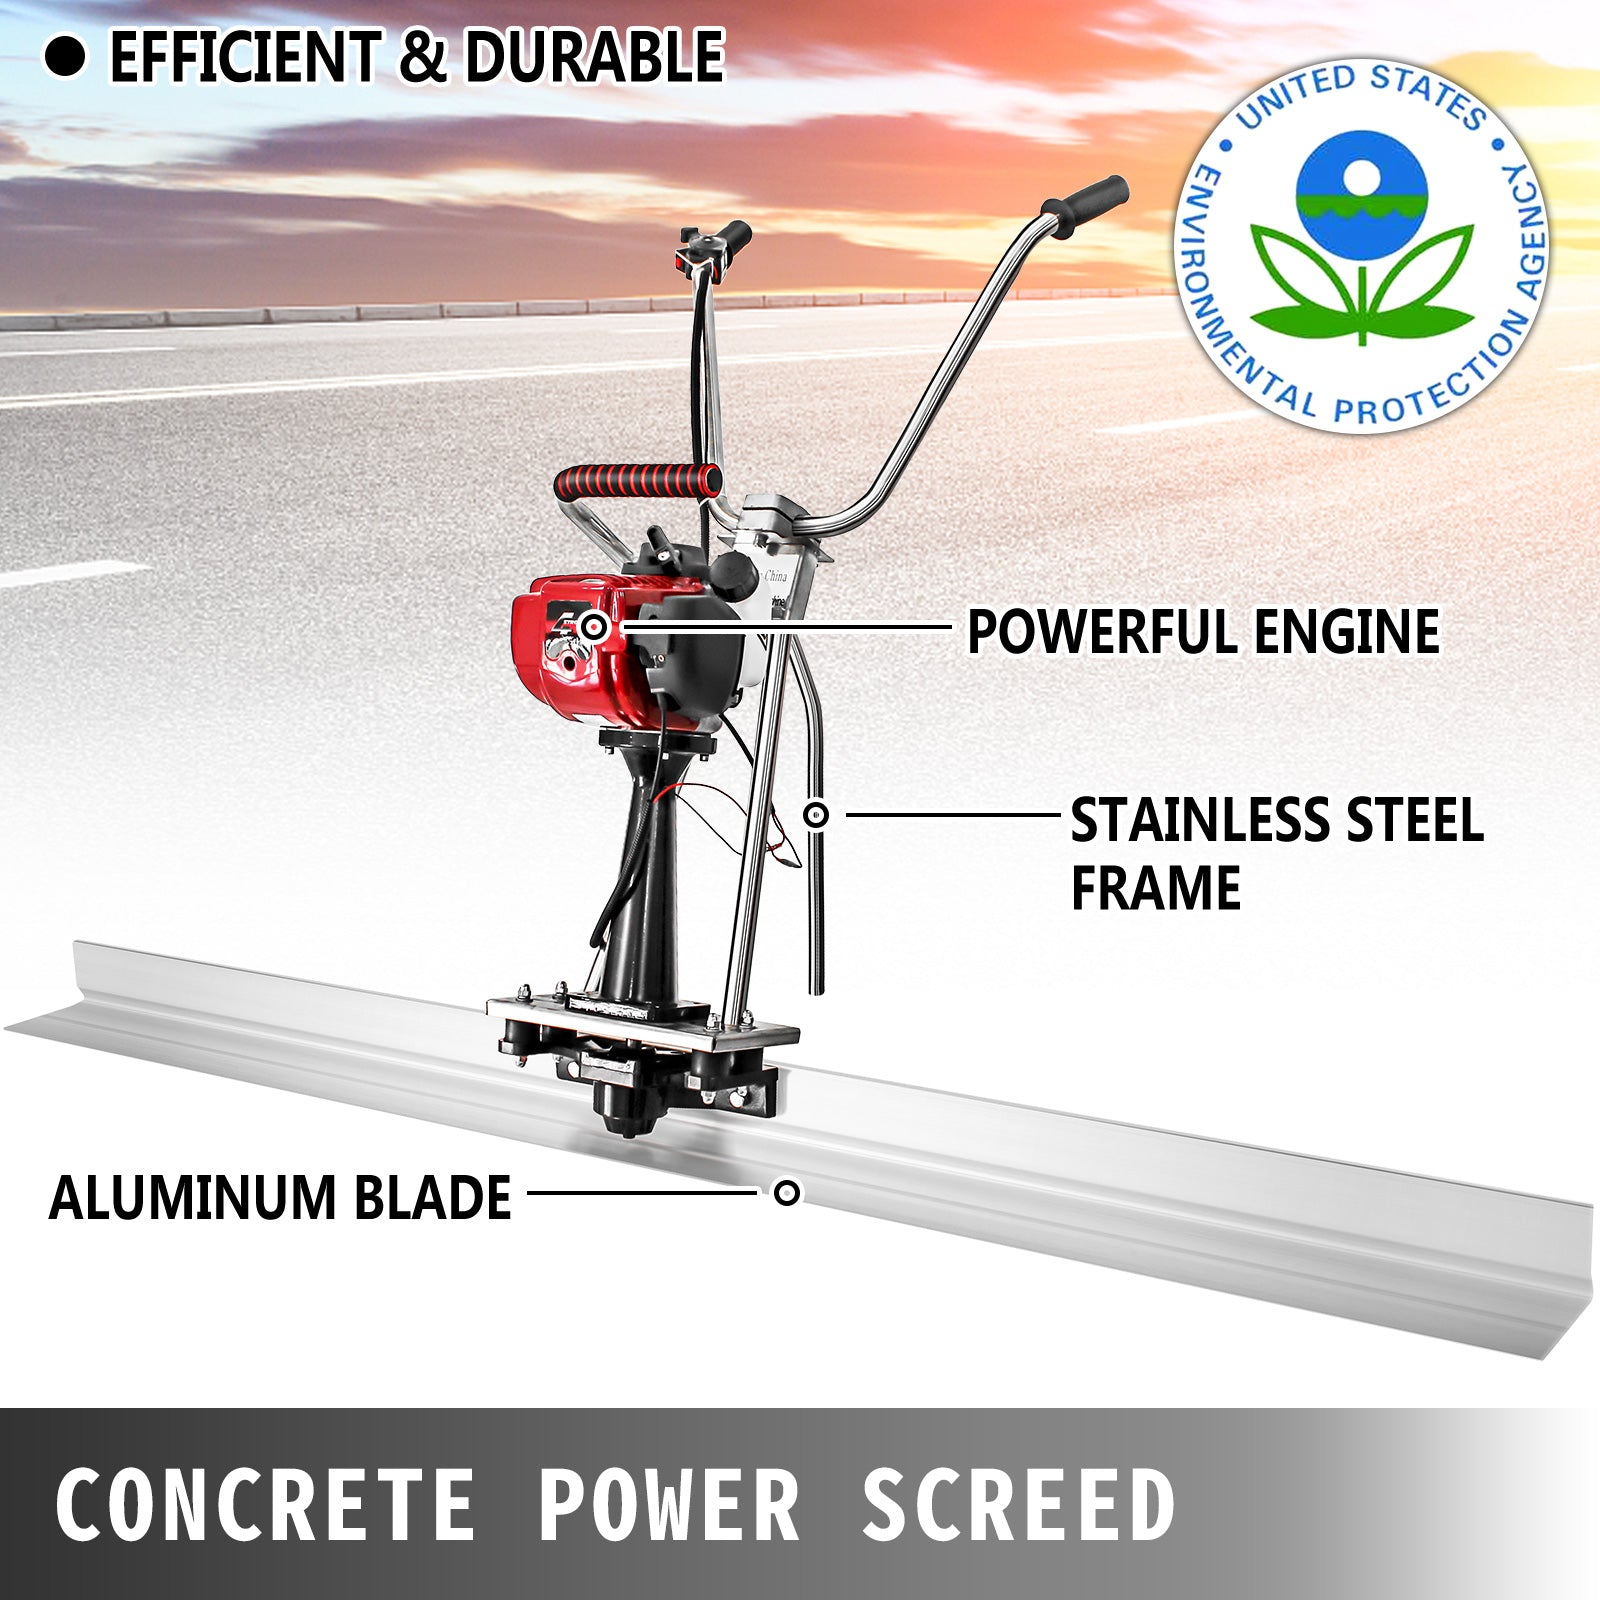 Power Screed Concrete Finishing Tool 8' Blade Board 37.7cc Gas Vibrating Screed